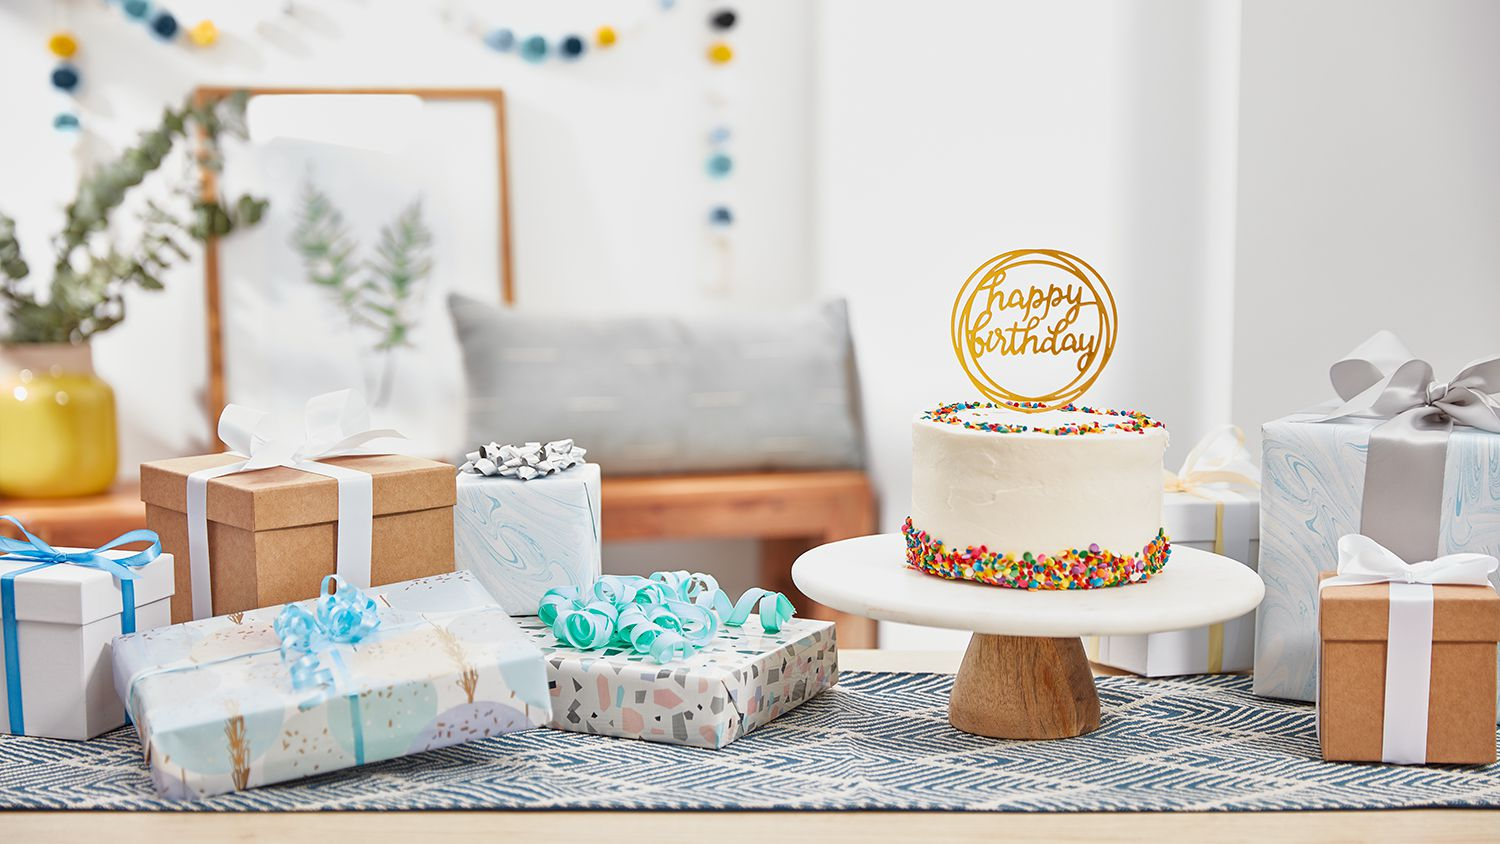 10 Gift Ideas For A Sweet 16